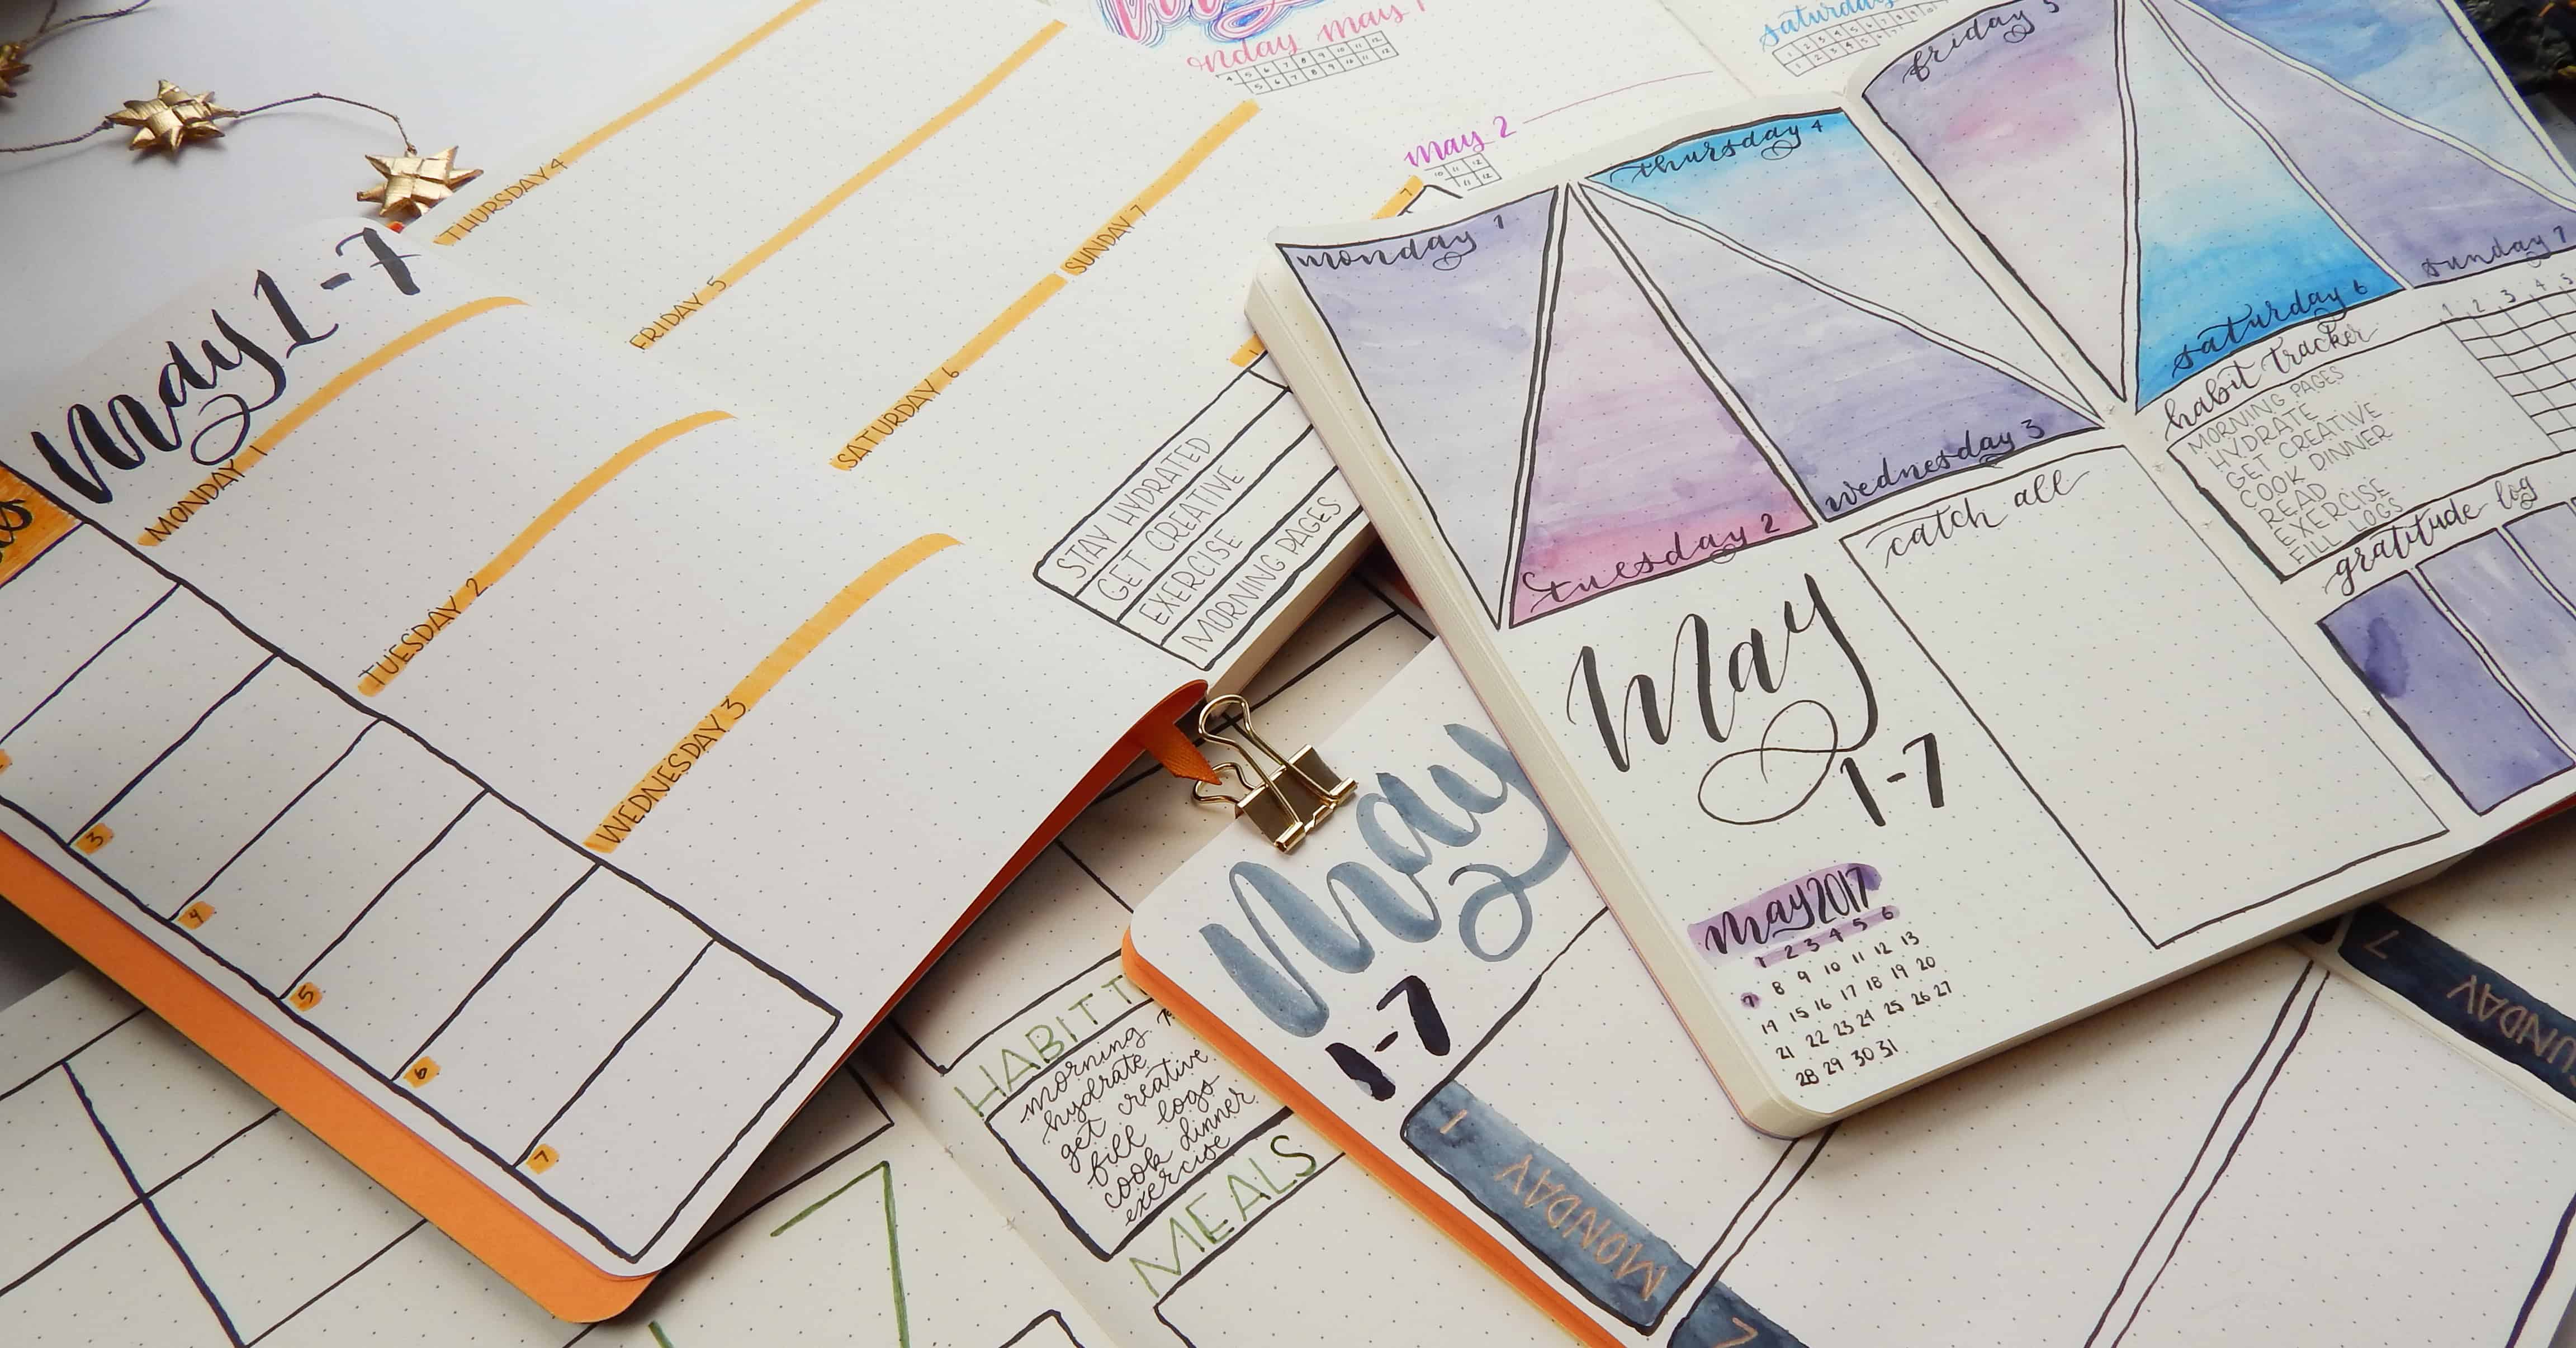 All You Need To Know The Best Bullet Journal Notebooks 2020